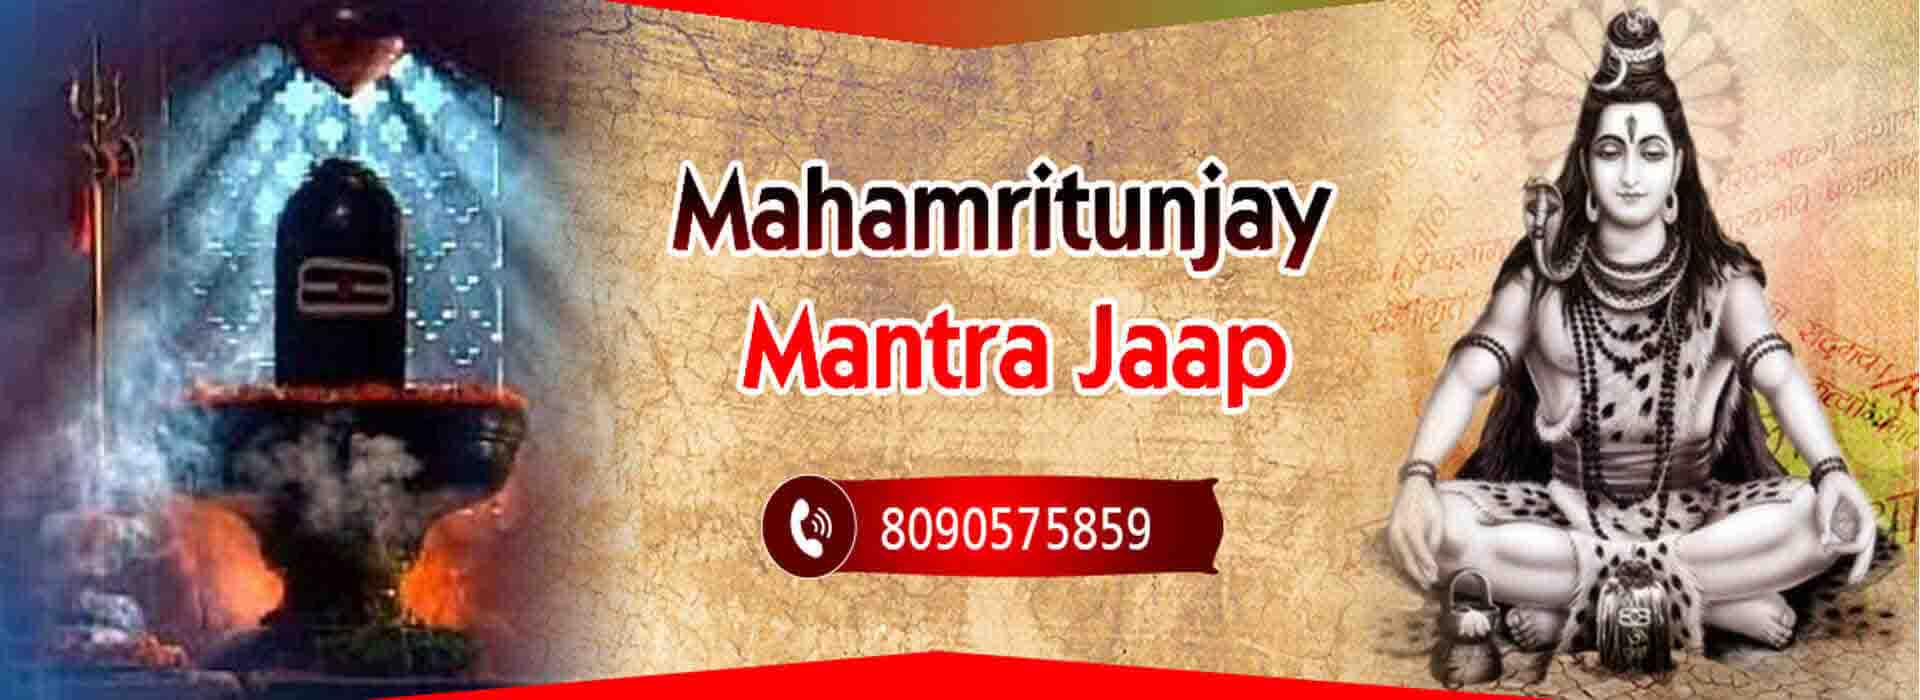 Book Spiritual tour Online on Bhagwanbhajan.com